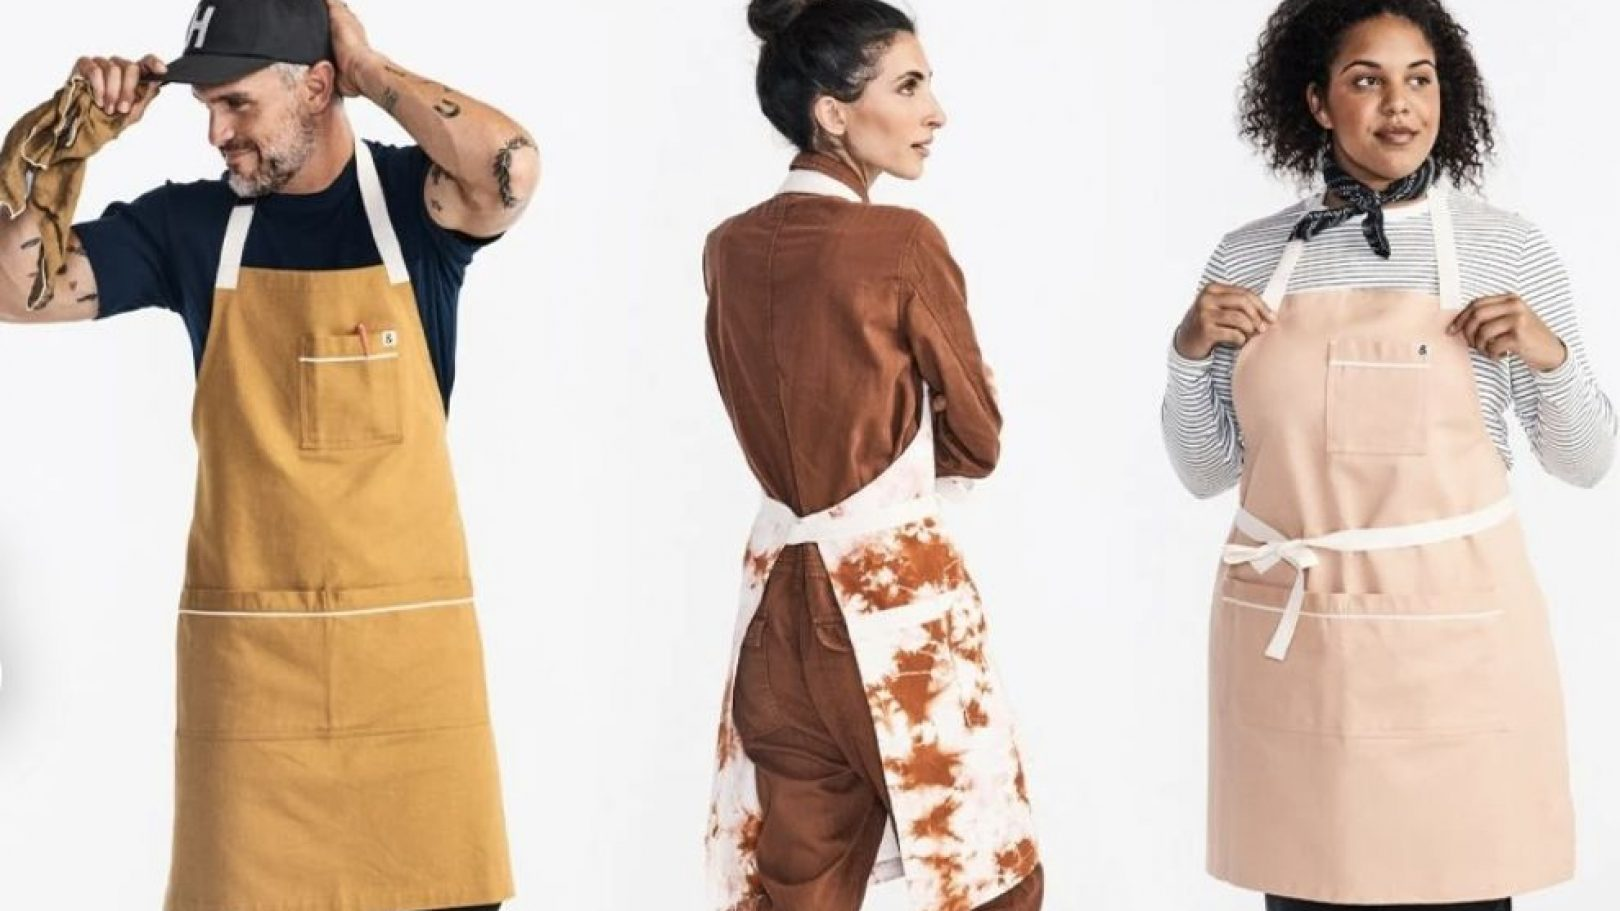 Three of the different types of aprons made by Hedley & Bennett for both professional and amateur cooks.